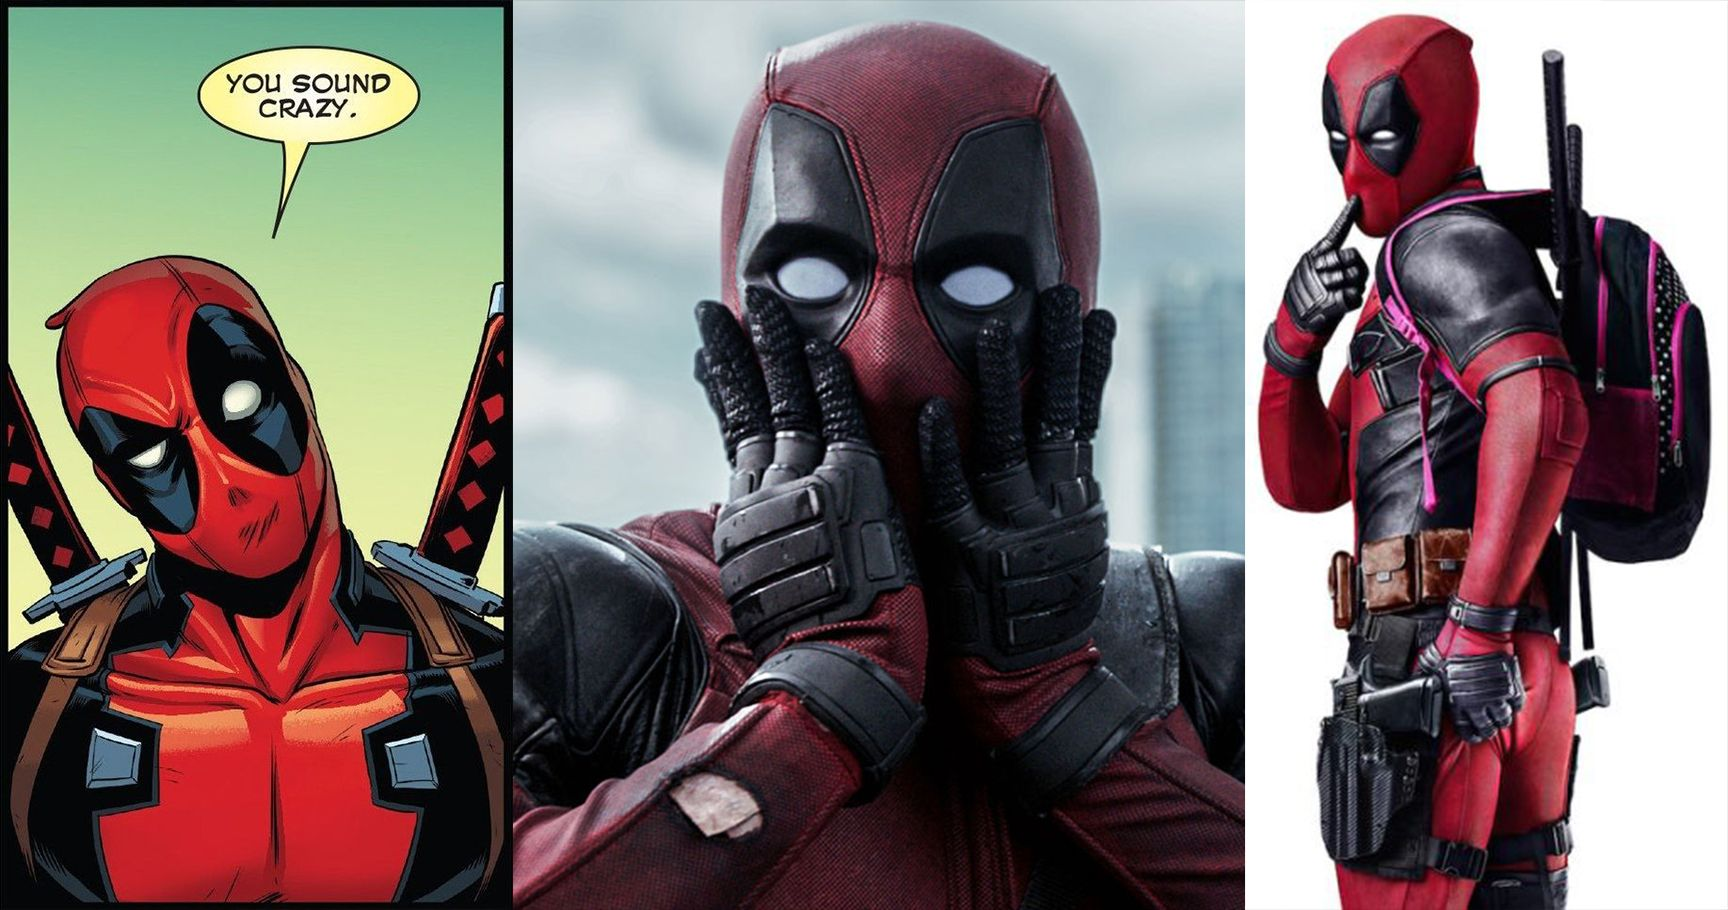 15 Awesome Things You Didn't Know About Deadpool